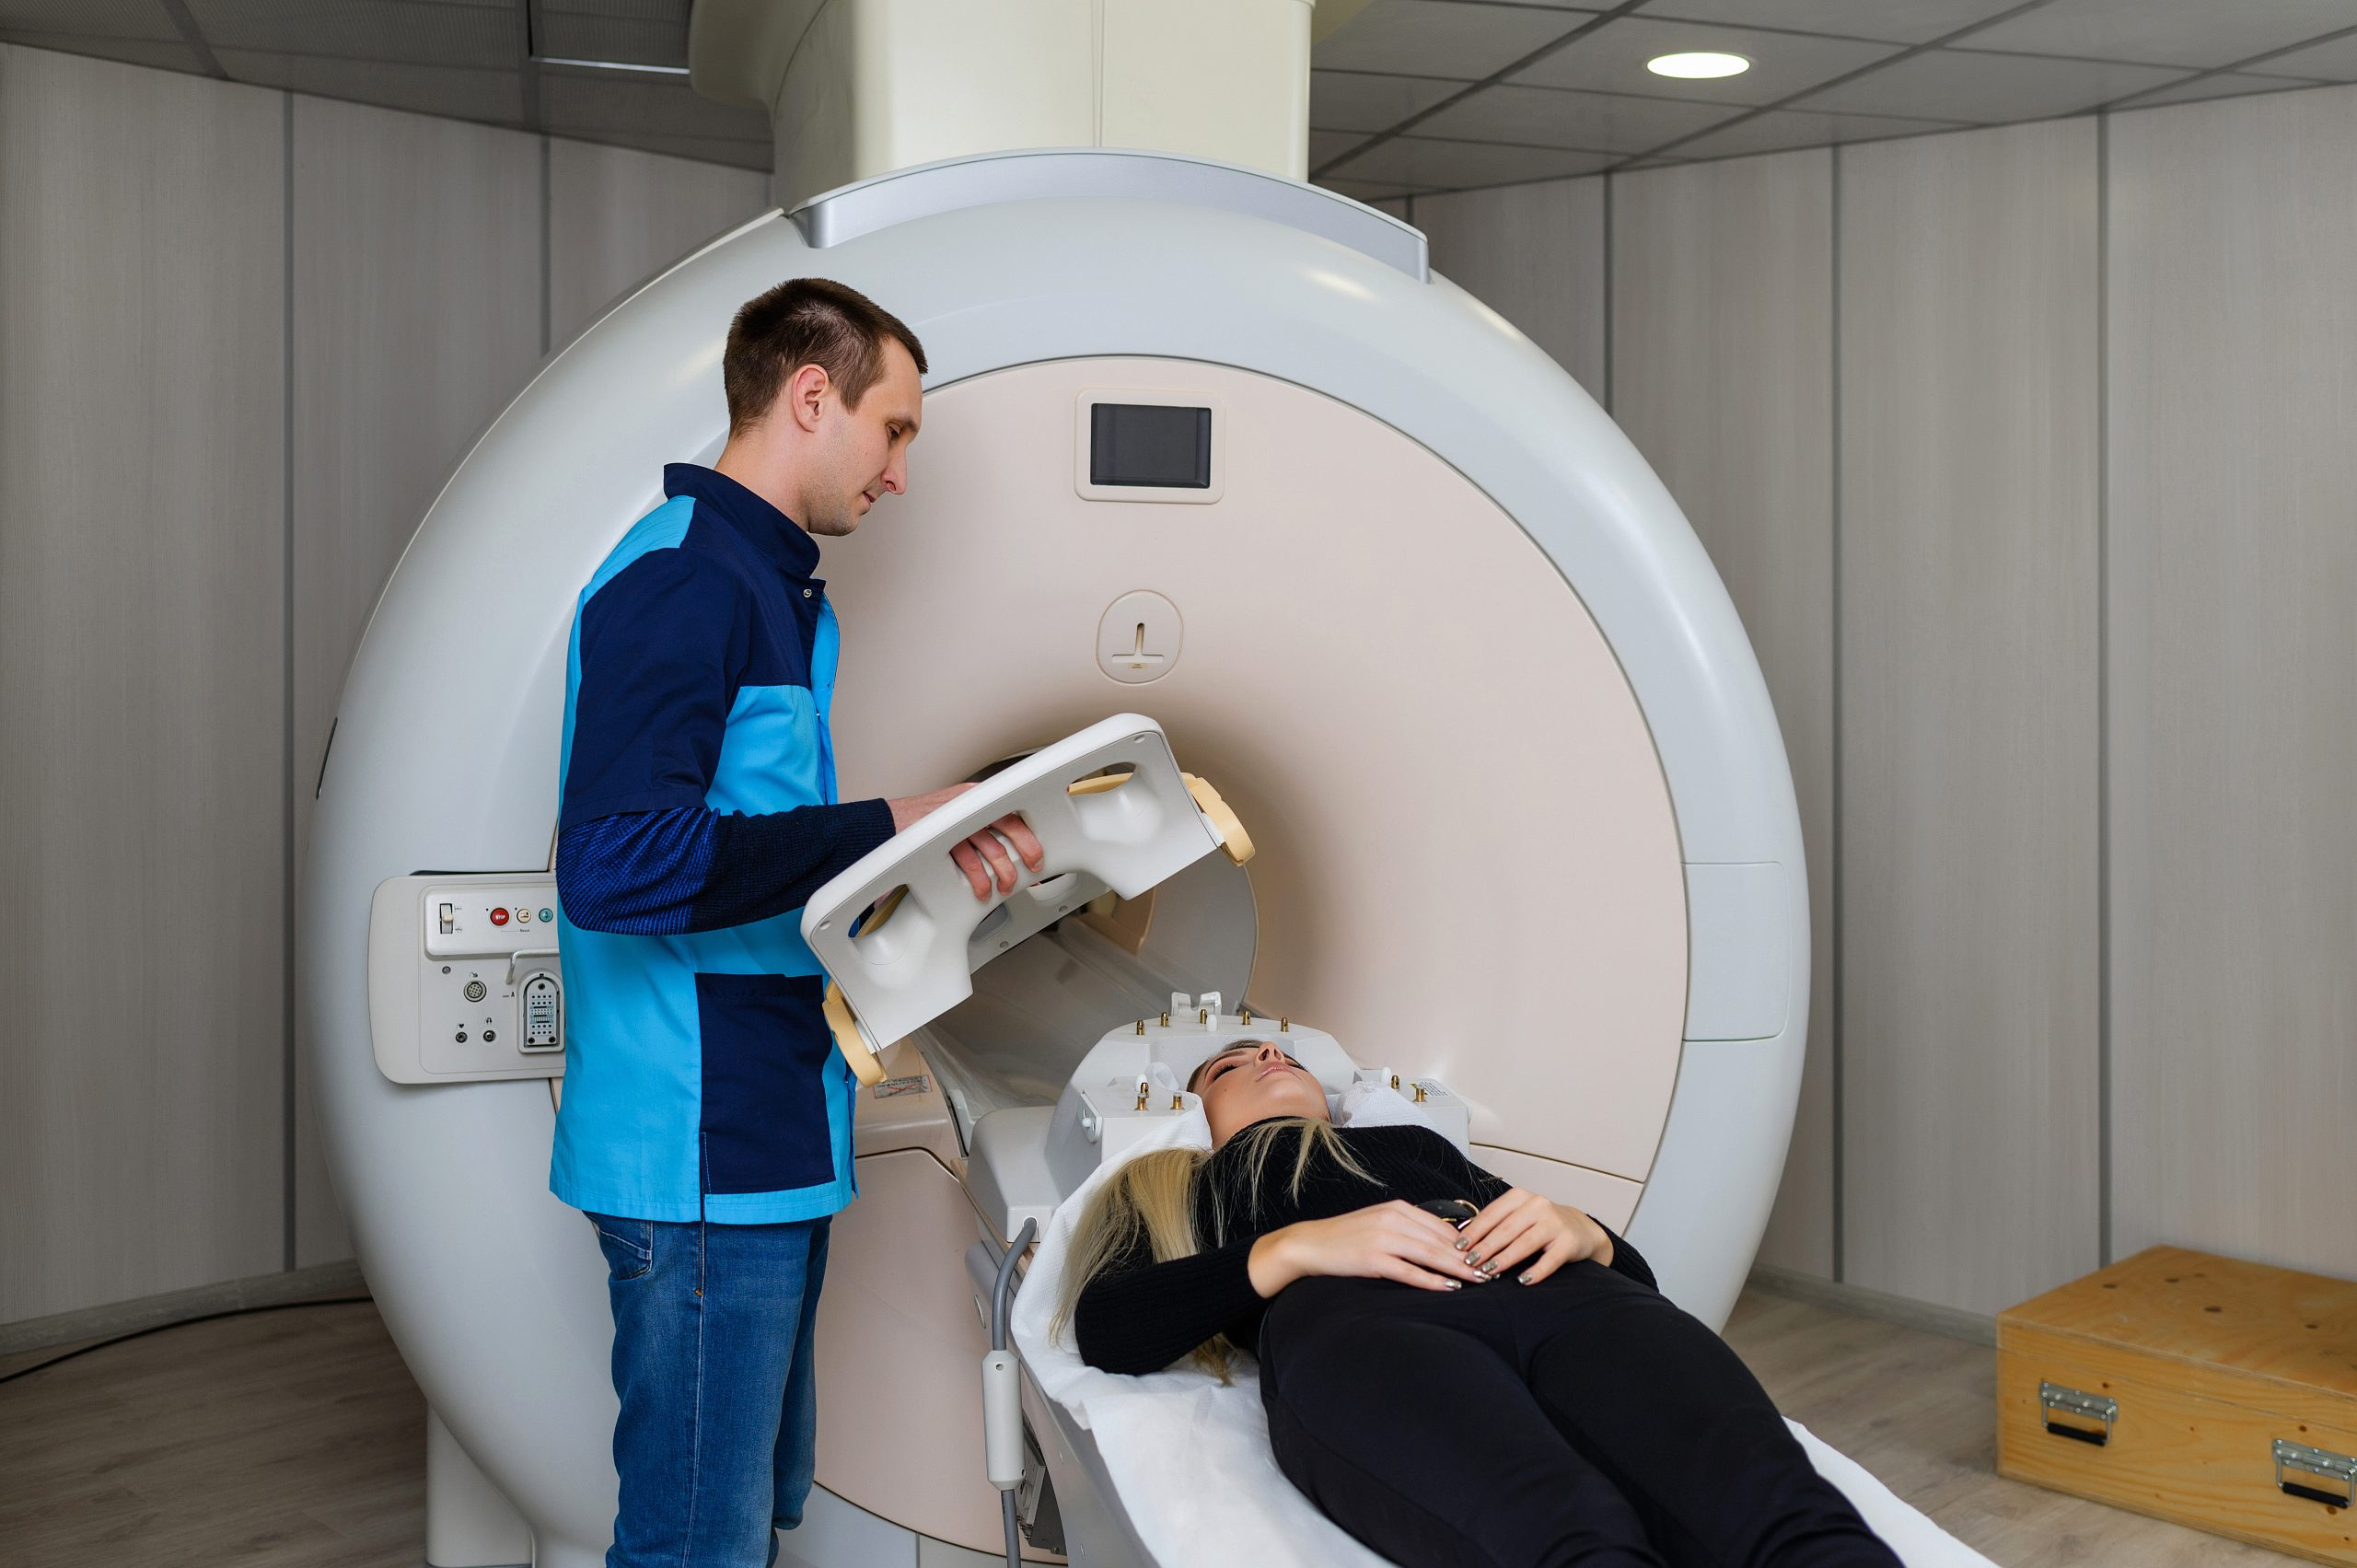 scanning patient on ge mri scanner with ge hnu coil